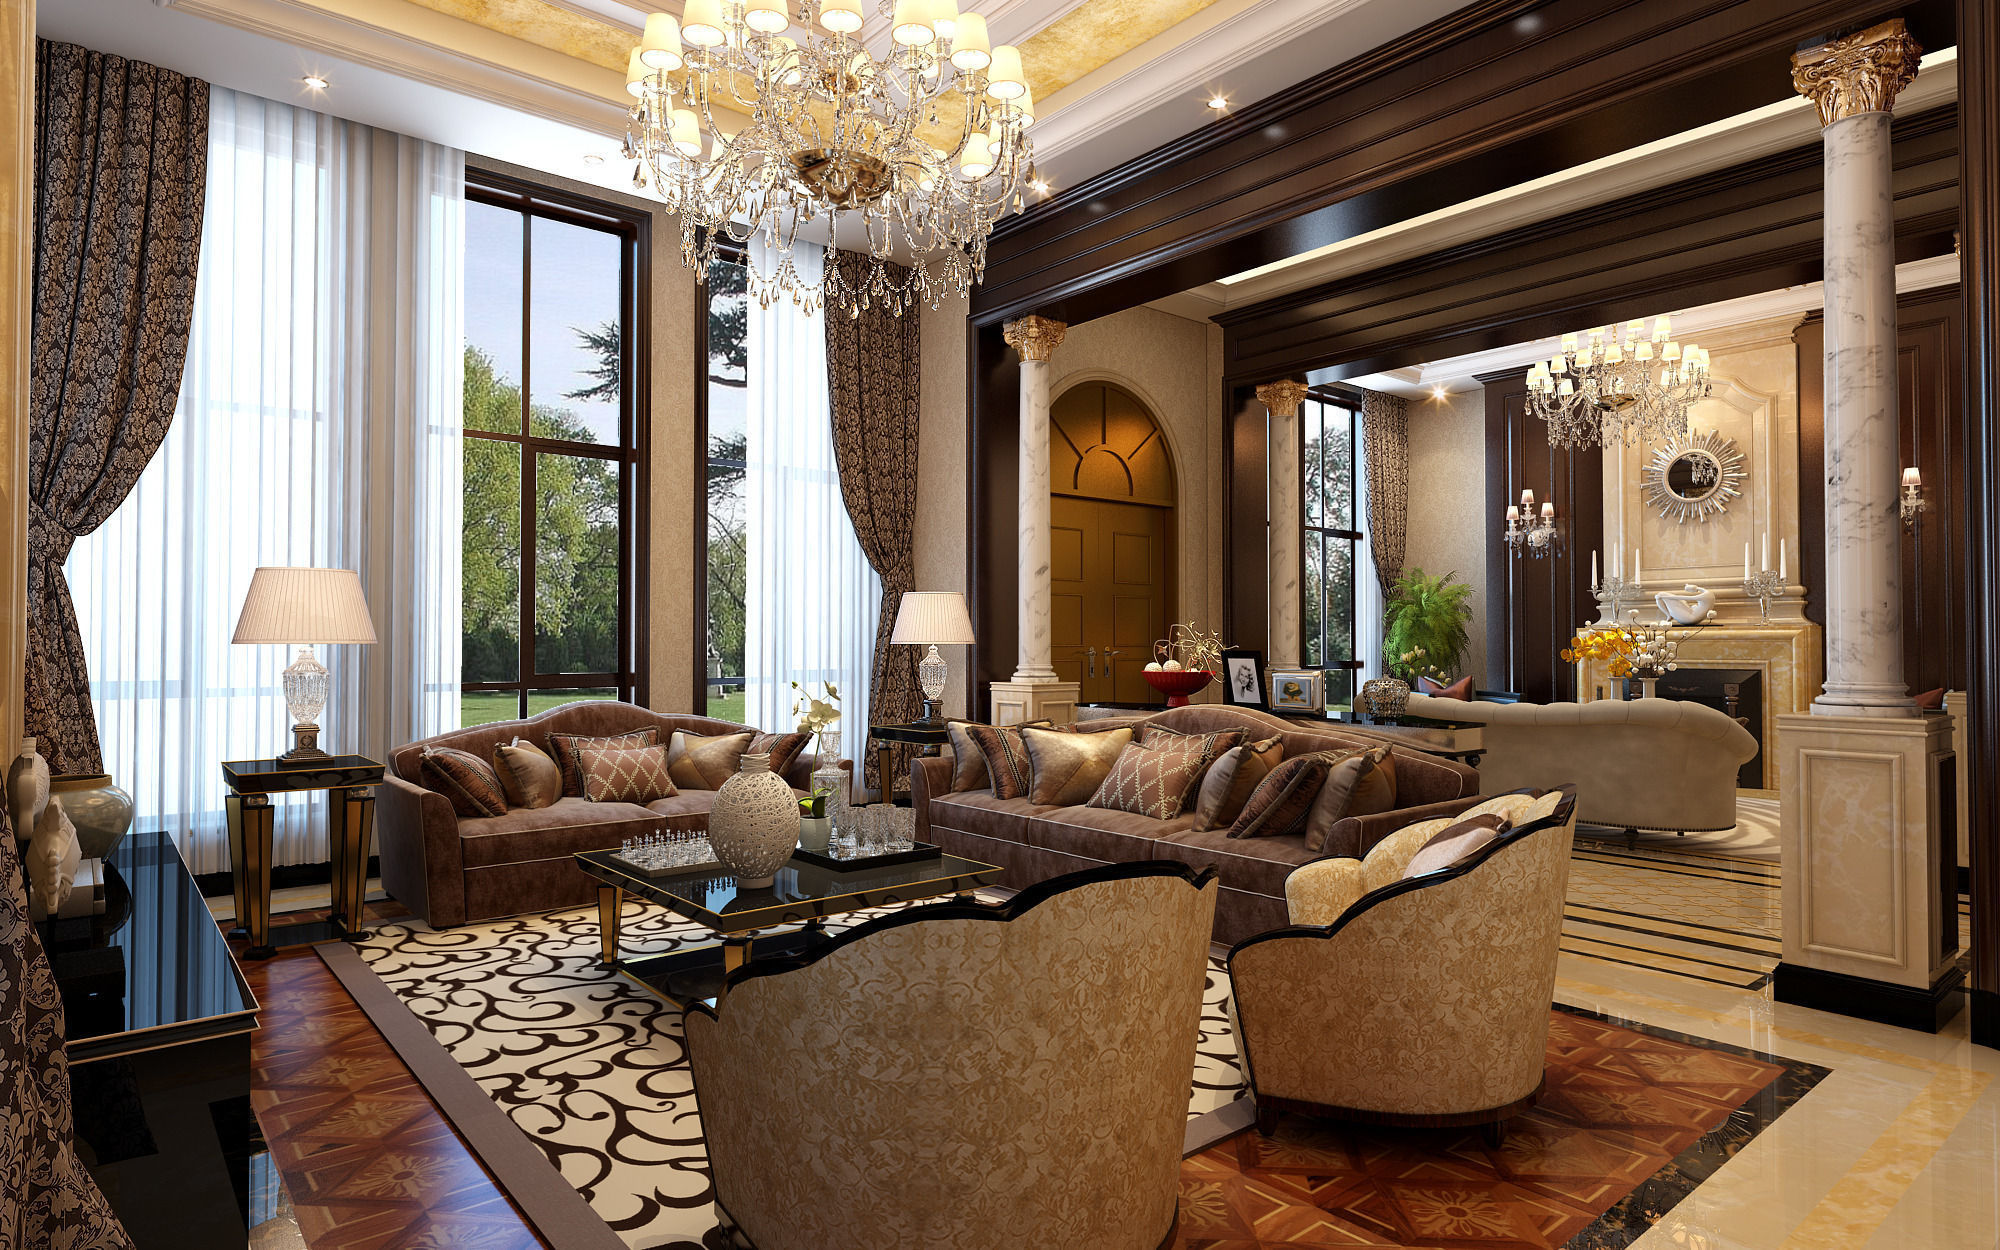 Excellent Model Room Design Largest Home Design Picture Inspirations Pitcheantrous